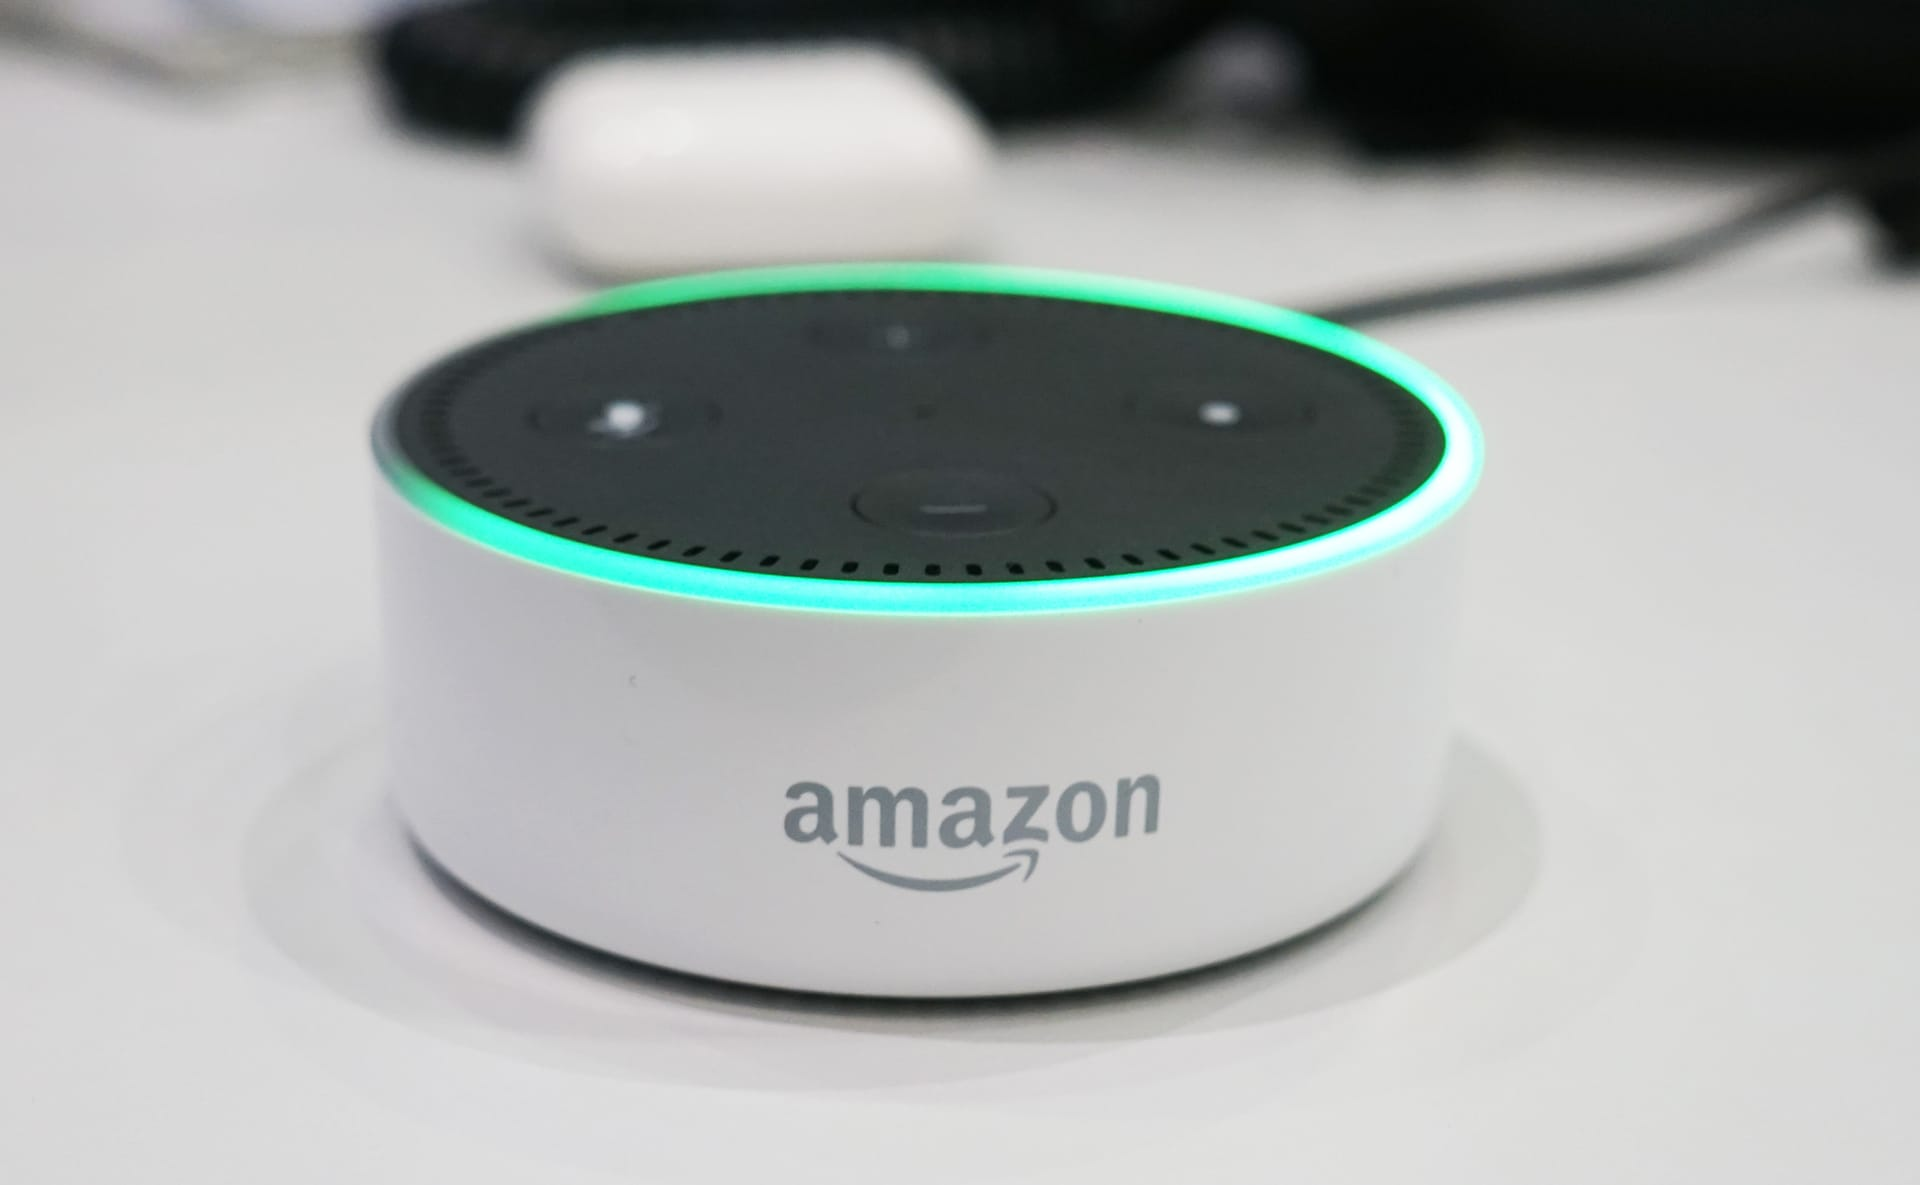 What The Lights On Your Amazon Echo Mean